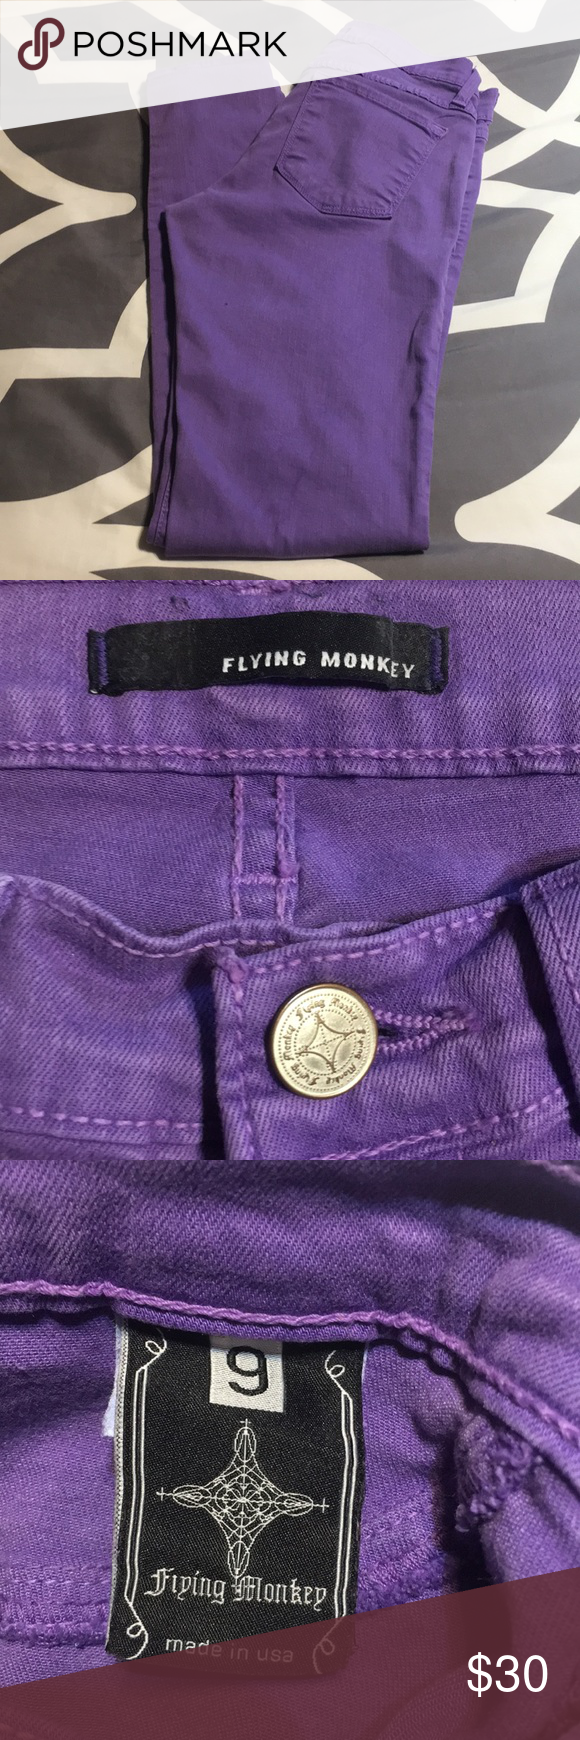 ❤️ flying monkey purple skinny jeans. S 9 Pre owned. Good